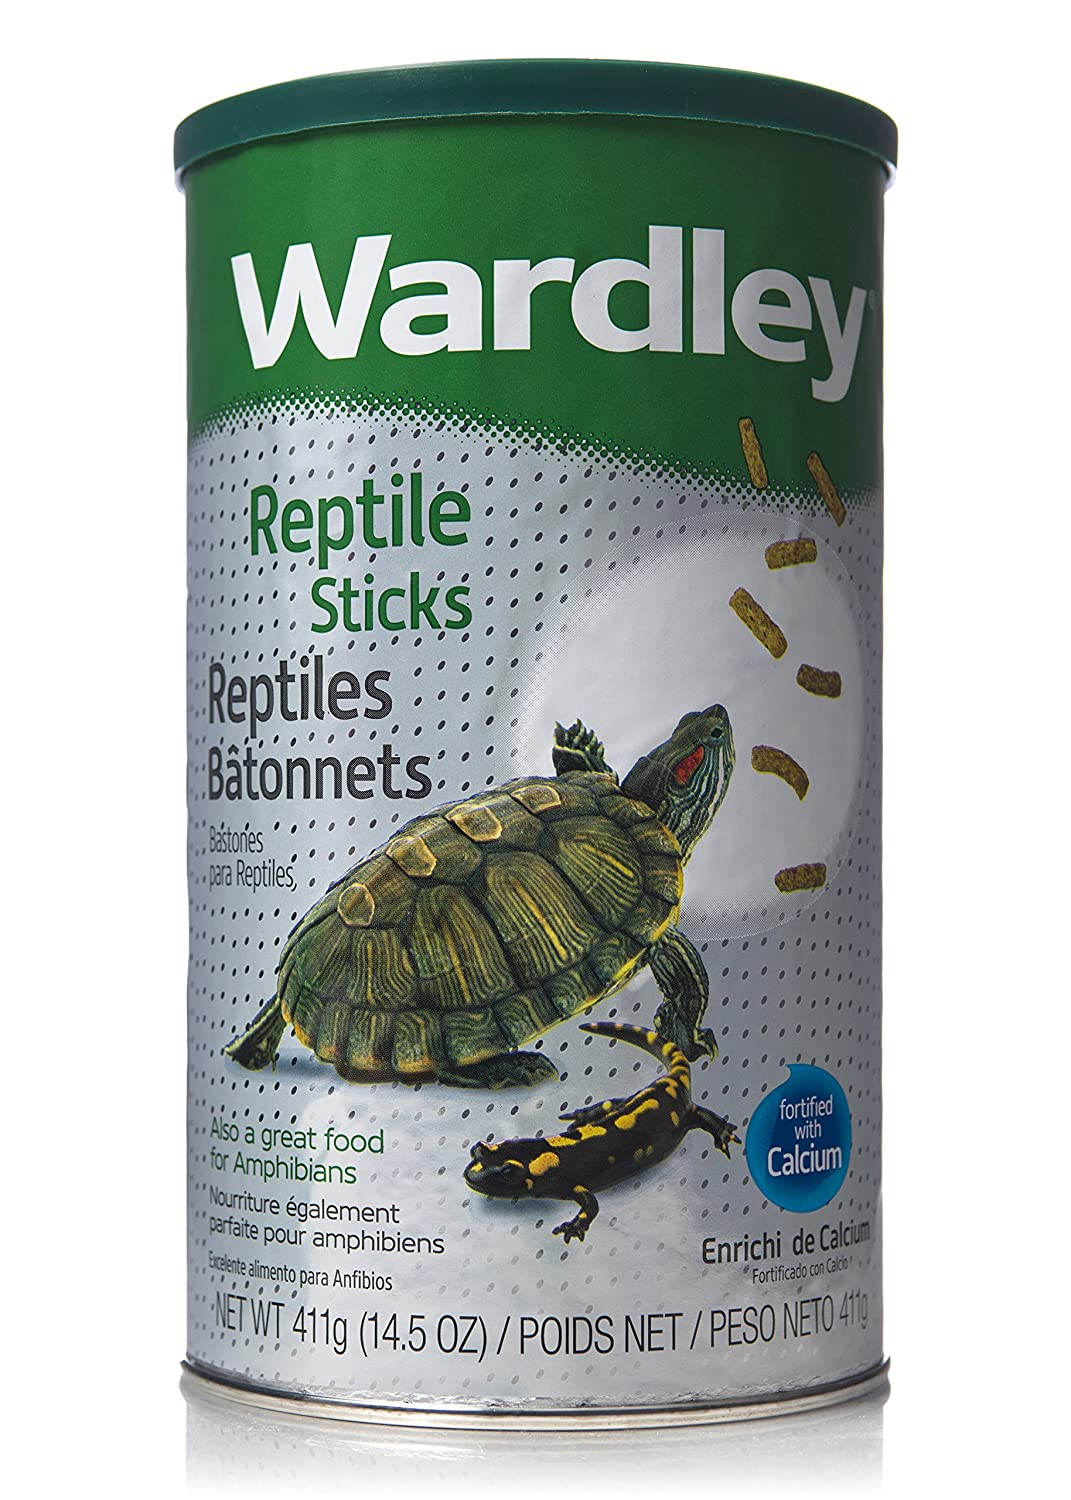 SuperClean Wardley Premium Amphibian and Reptile Food Stix Wardley Products 4332400692